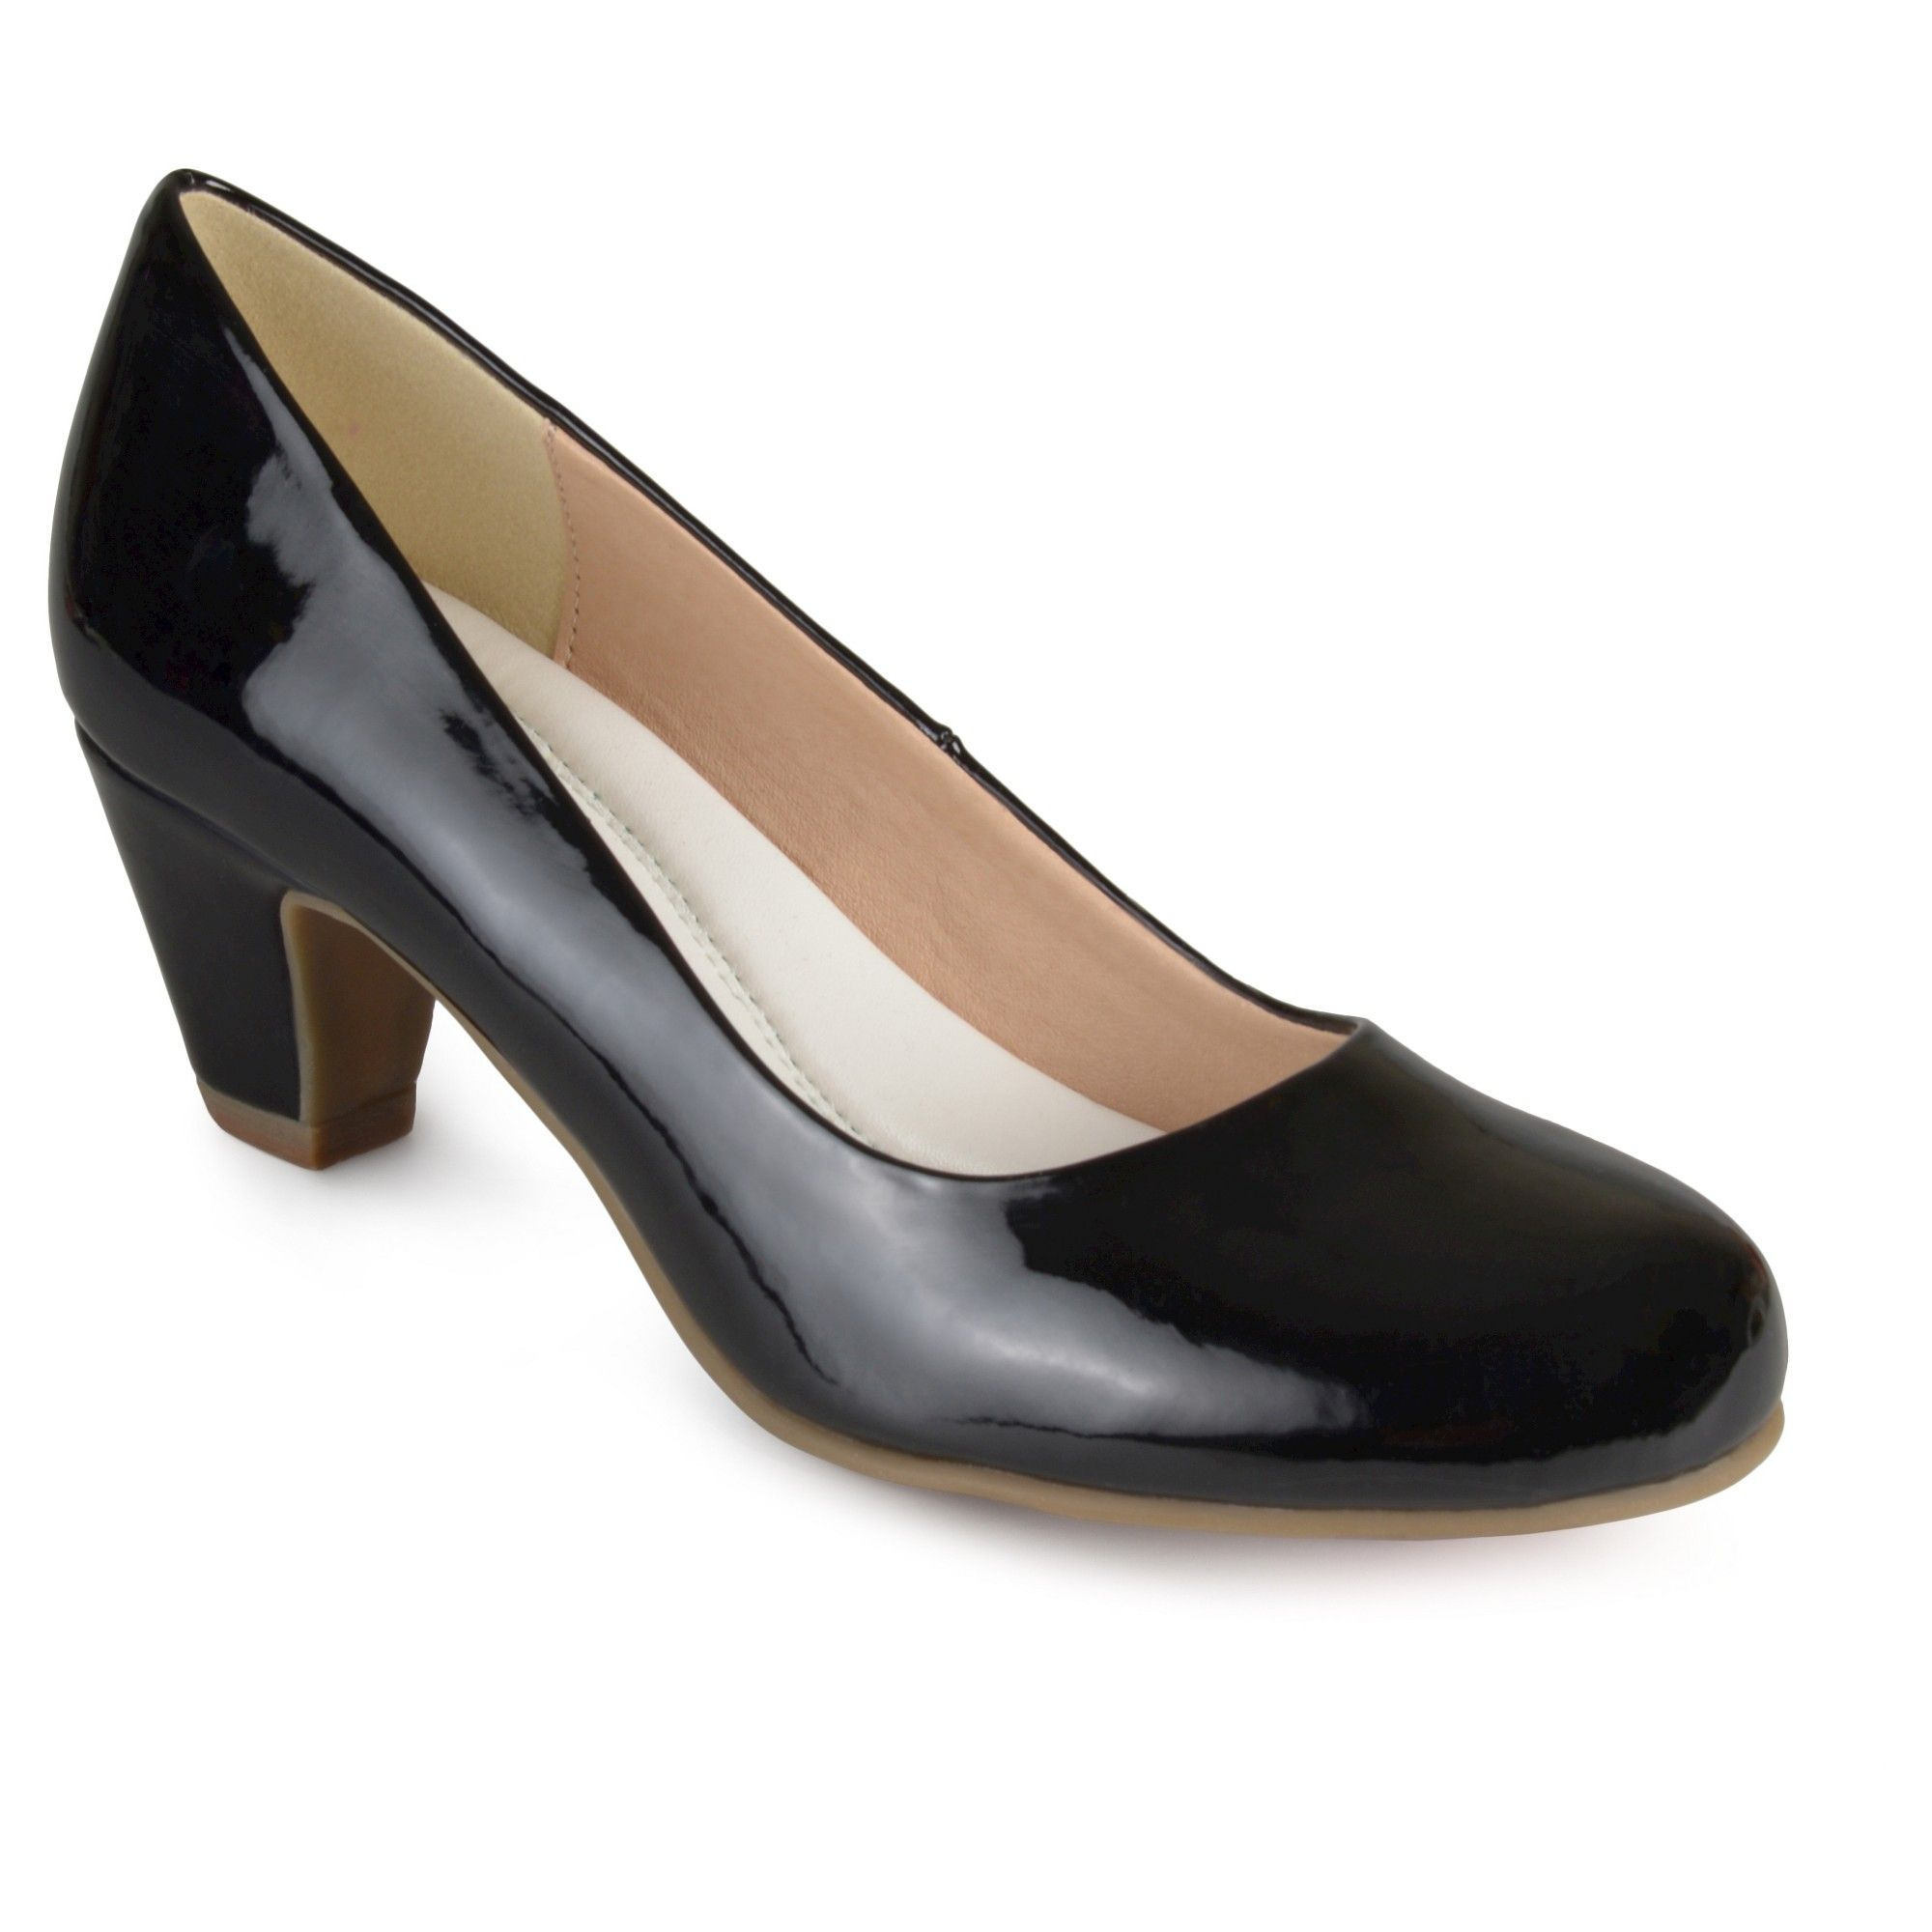 0f378be559a68 Women's Journee Collection Round Toe Comfort Fit Patent Classic Kitten Heel  Pumps - Black 8.5